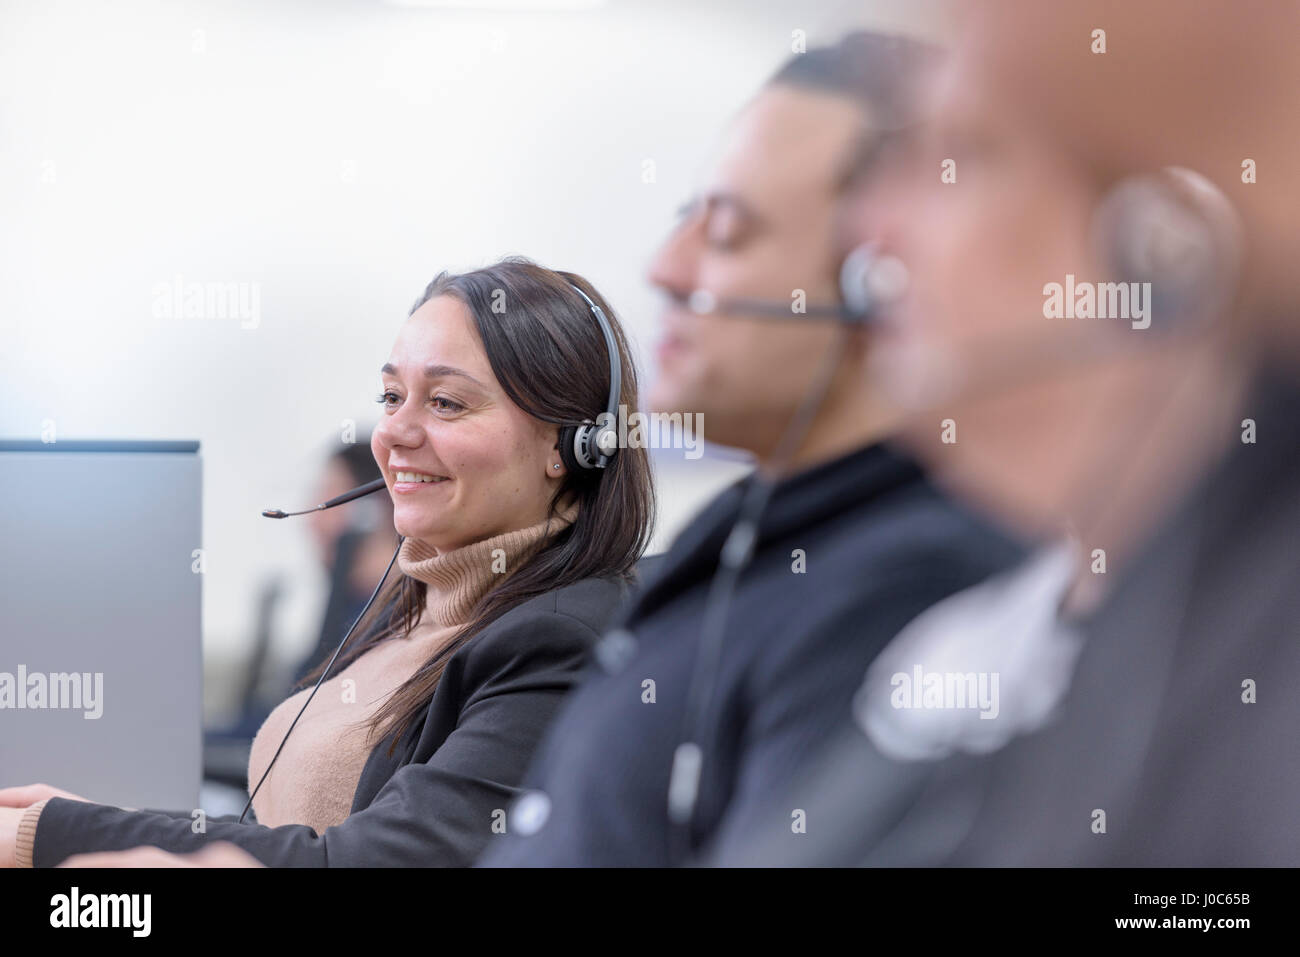 Operators in automotive call centre in car factory - Stock Image